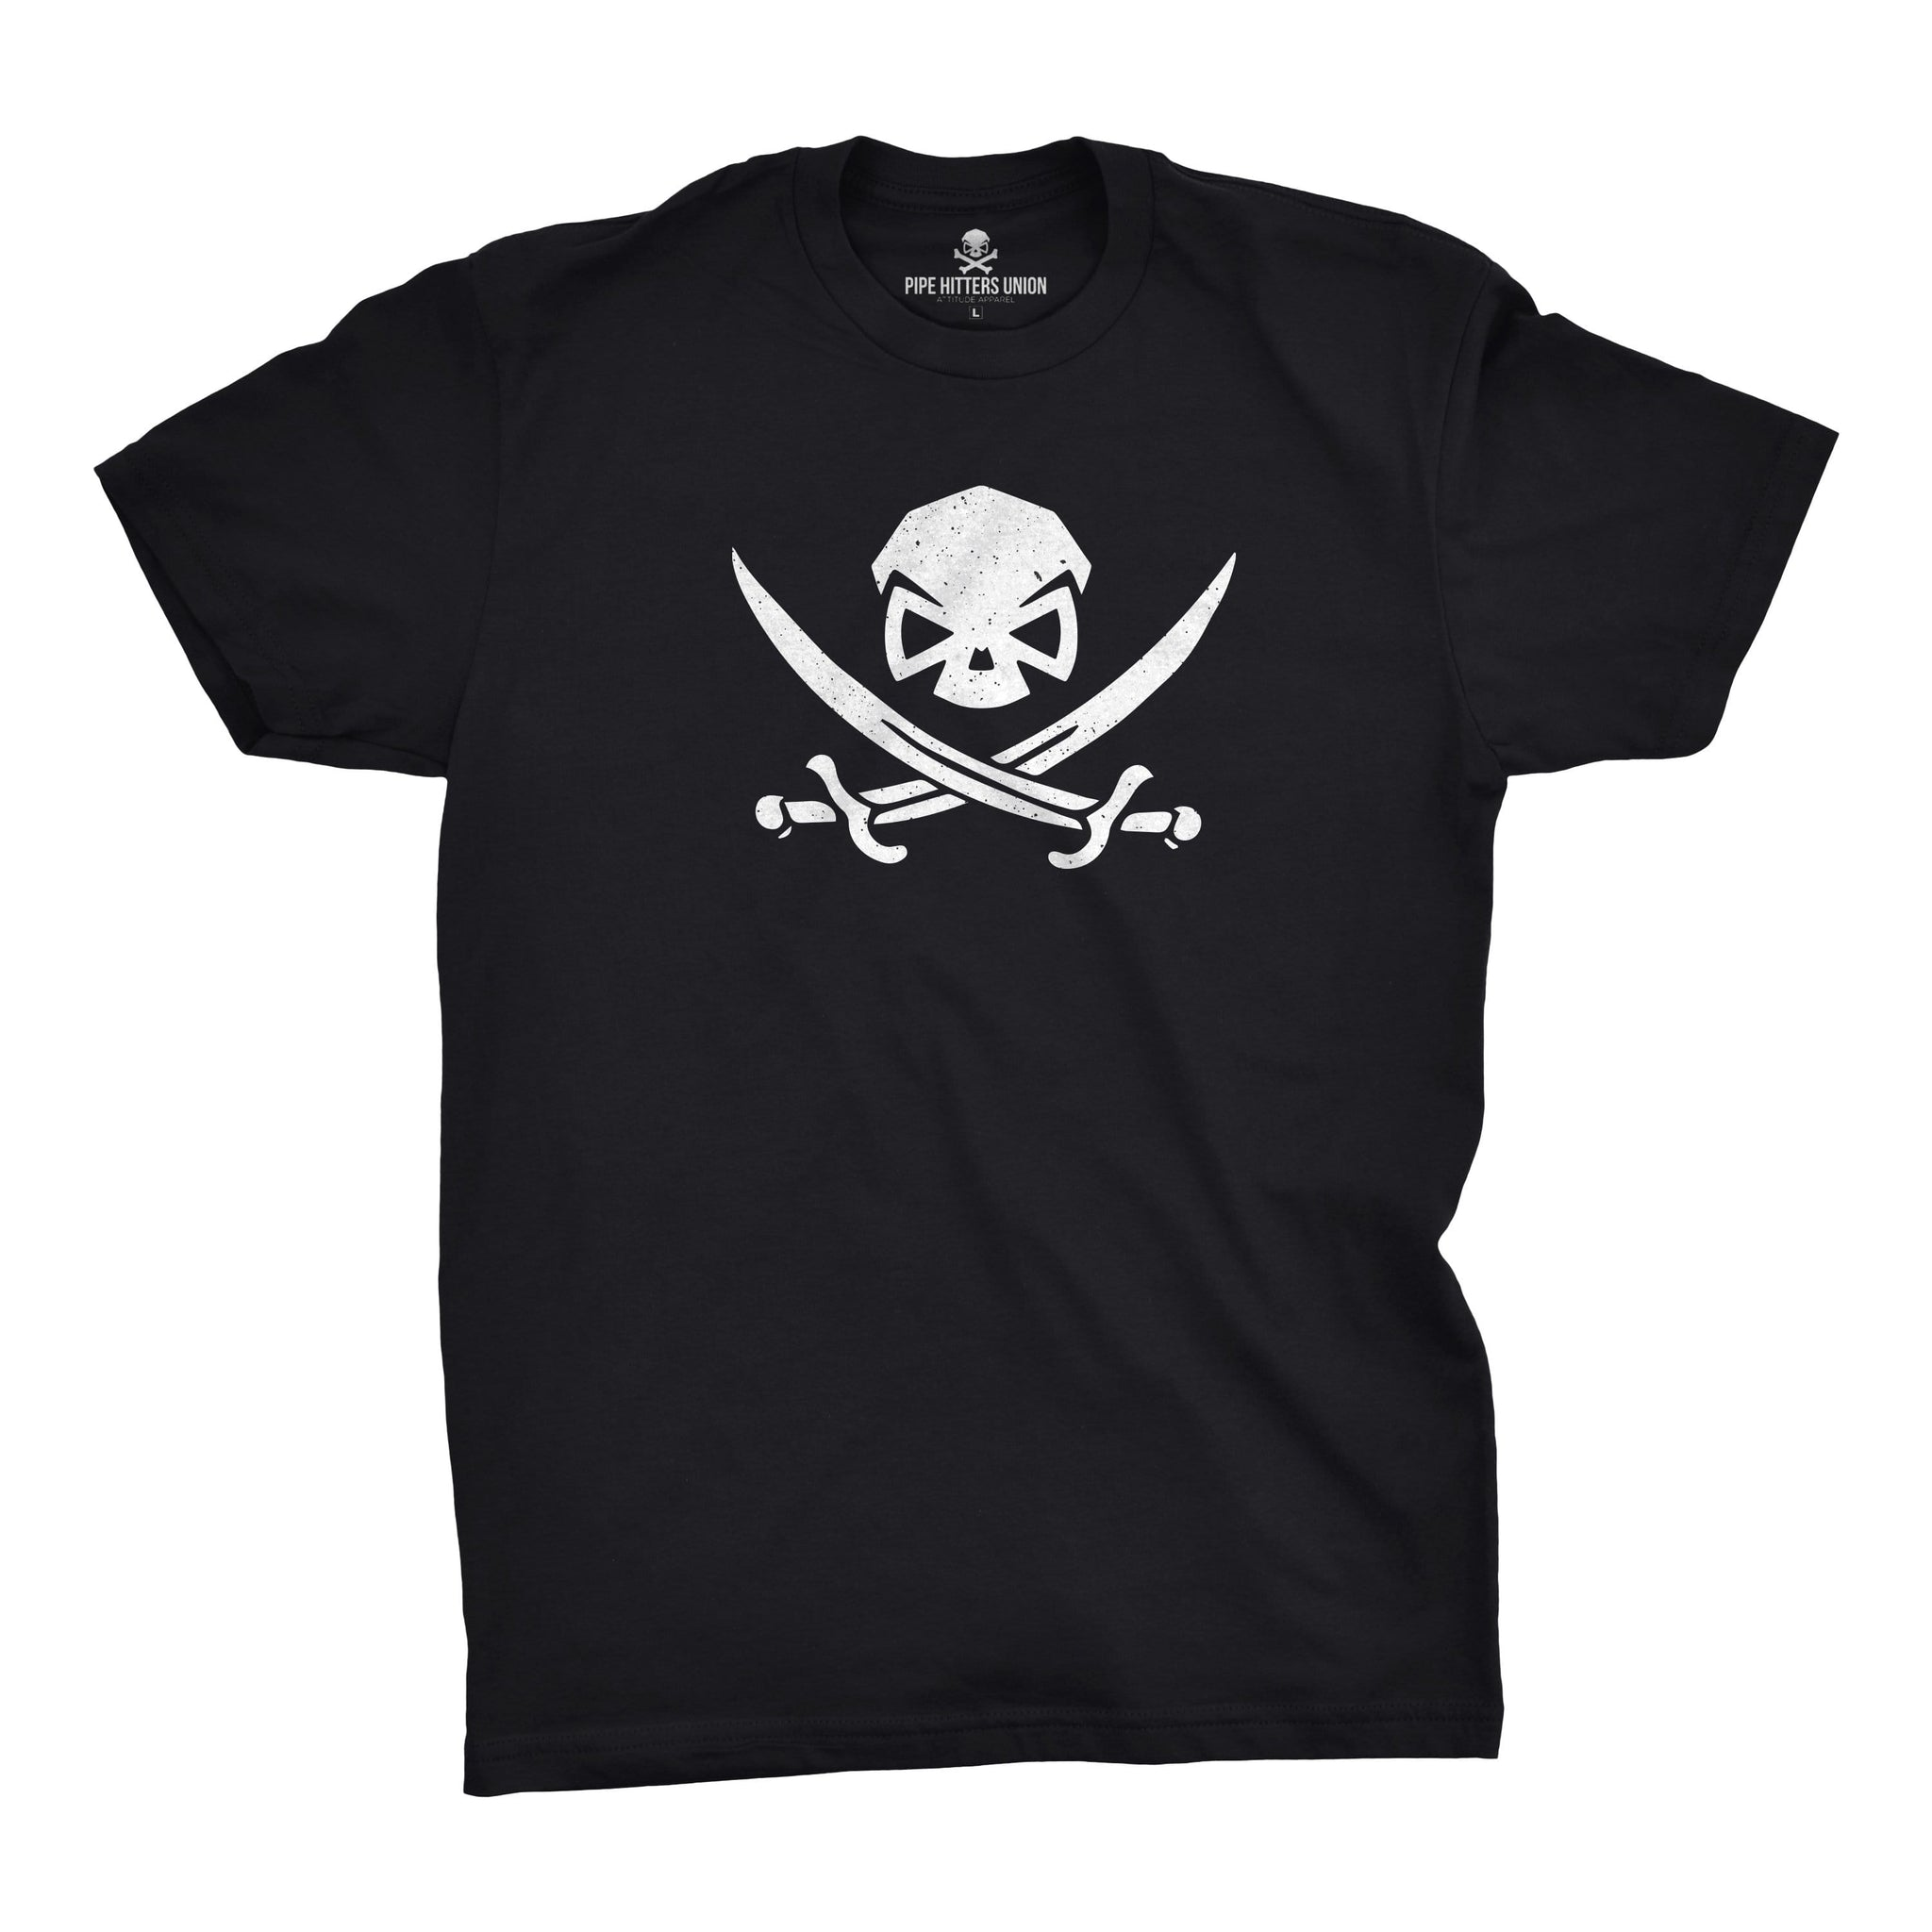 High Seas Hitter - Black - T-Shirts - Pipe Hitters Union